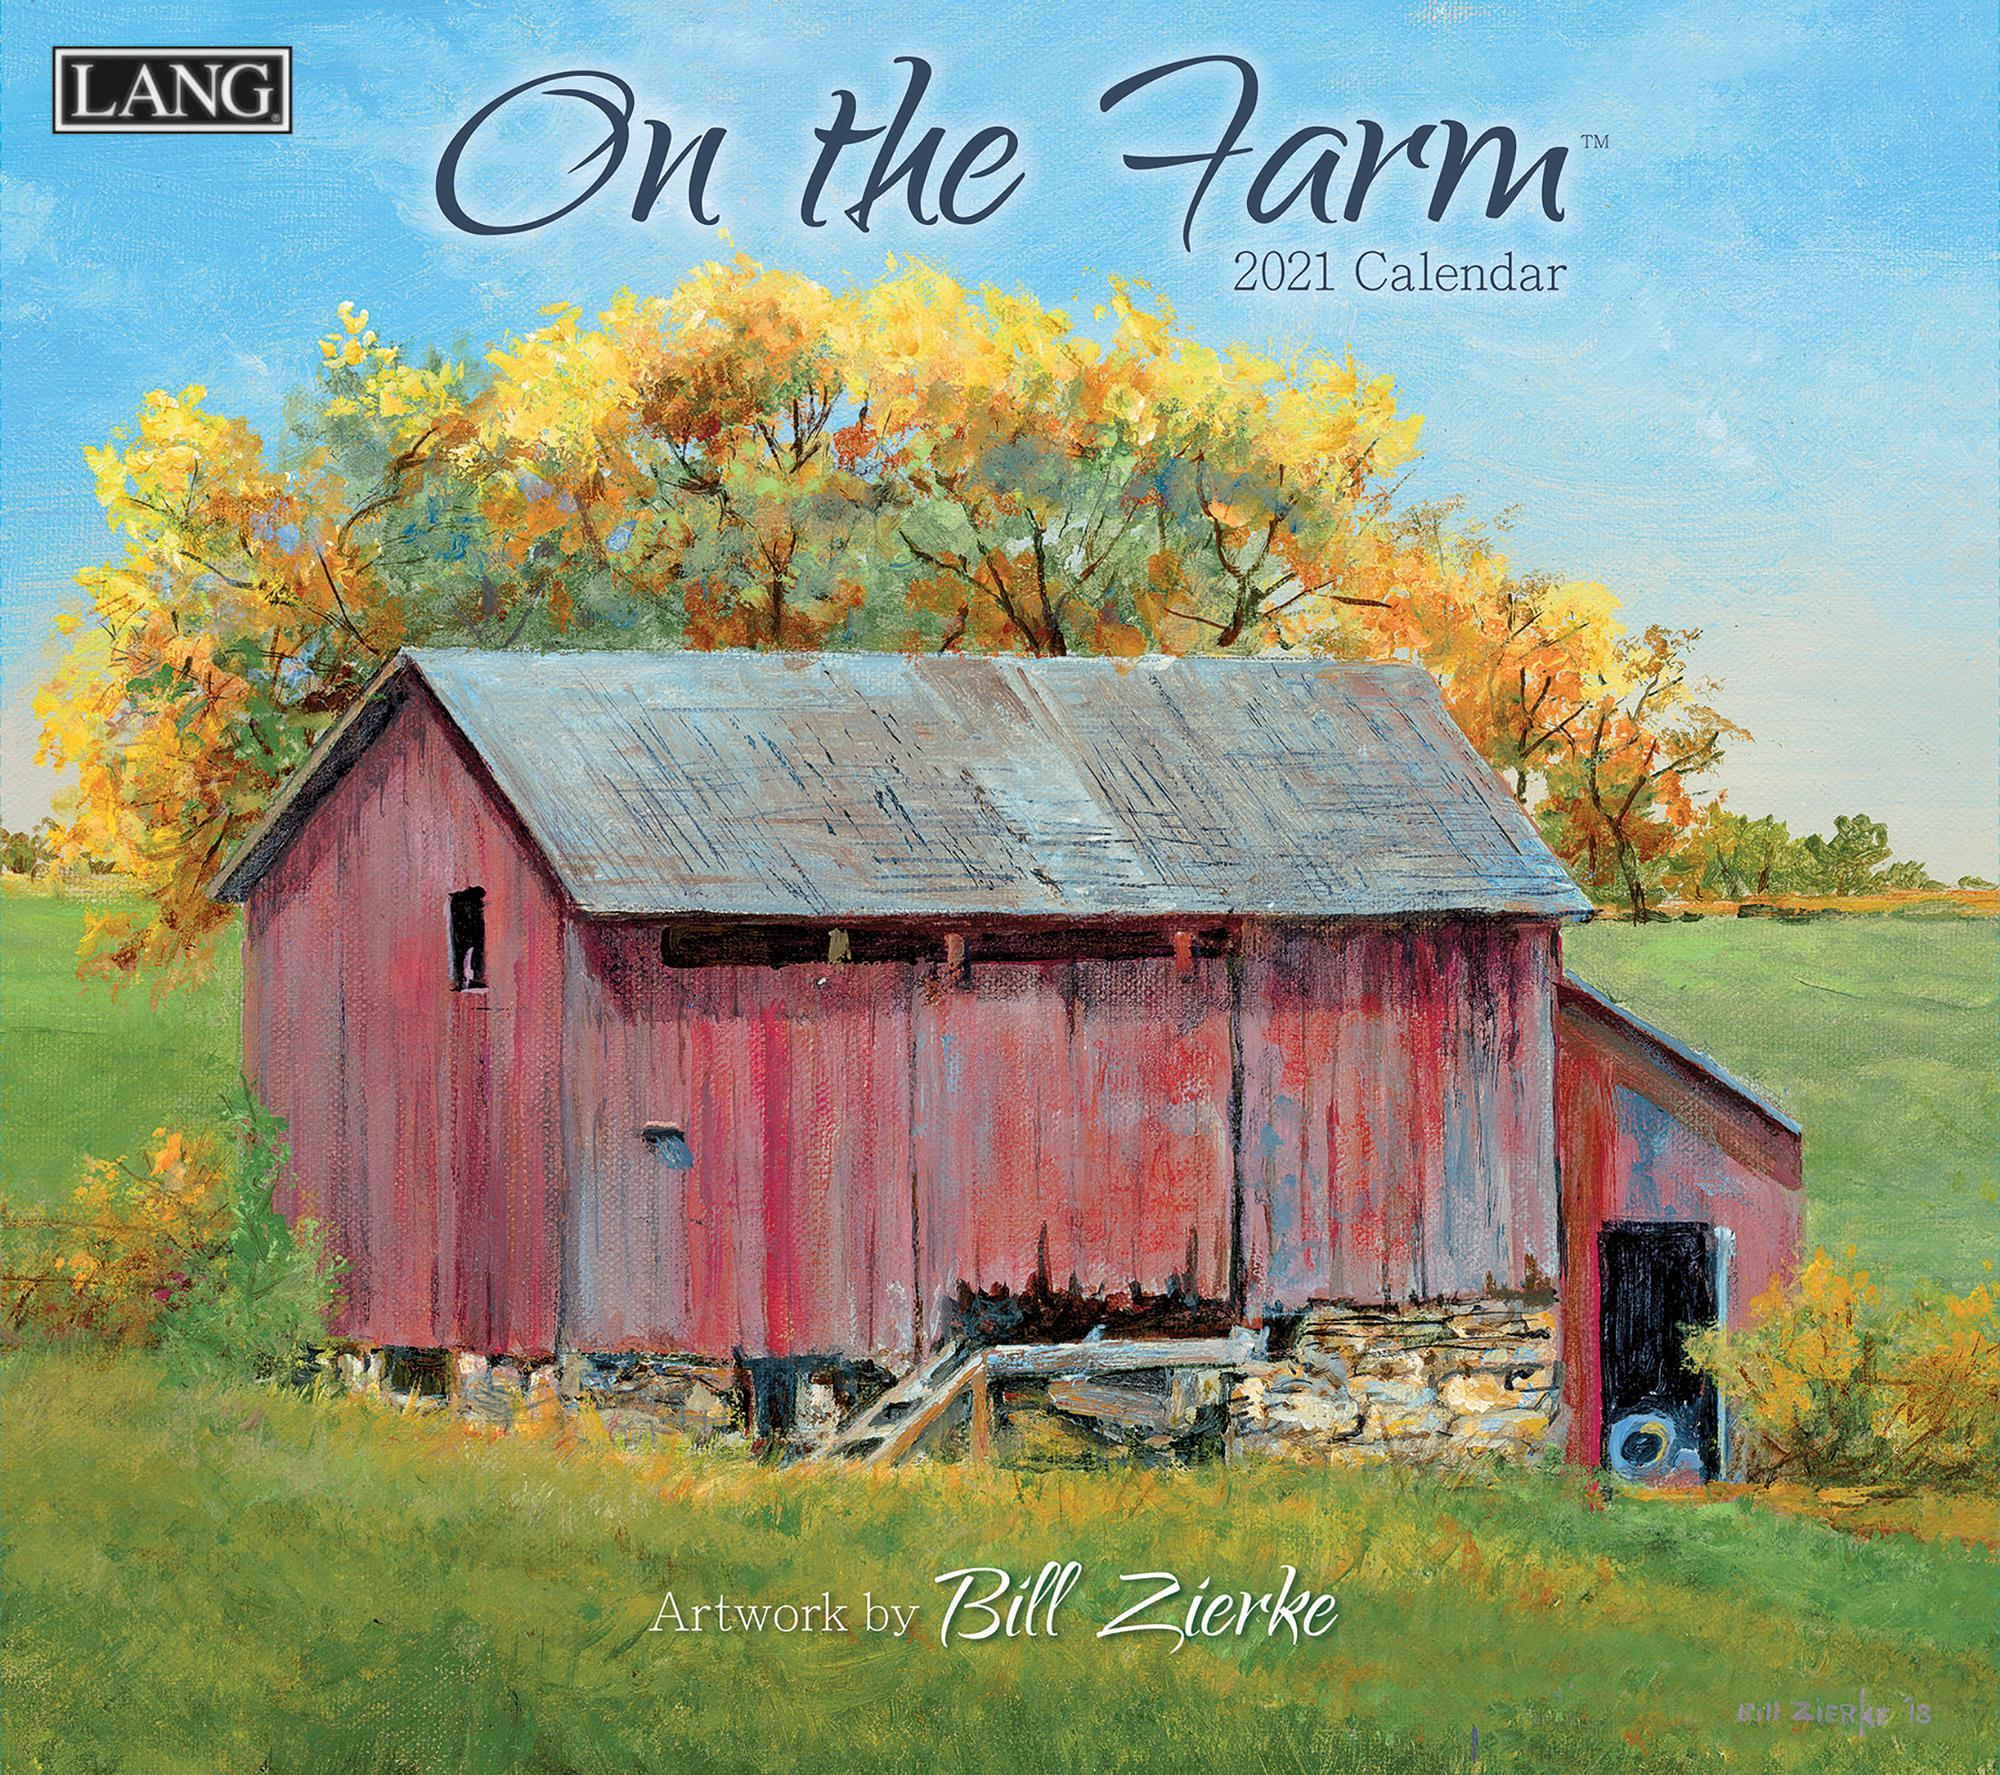 On the Farm Calendar